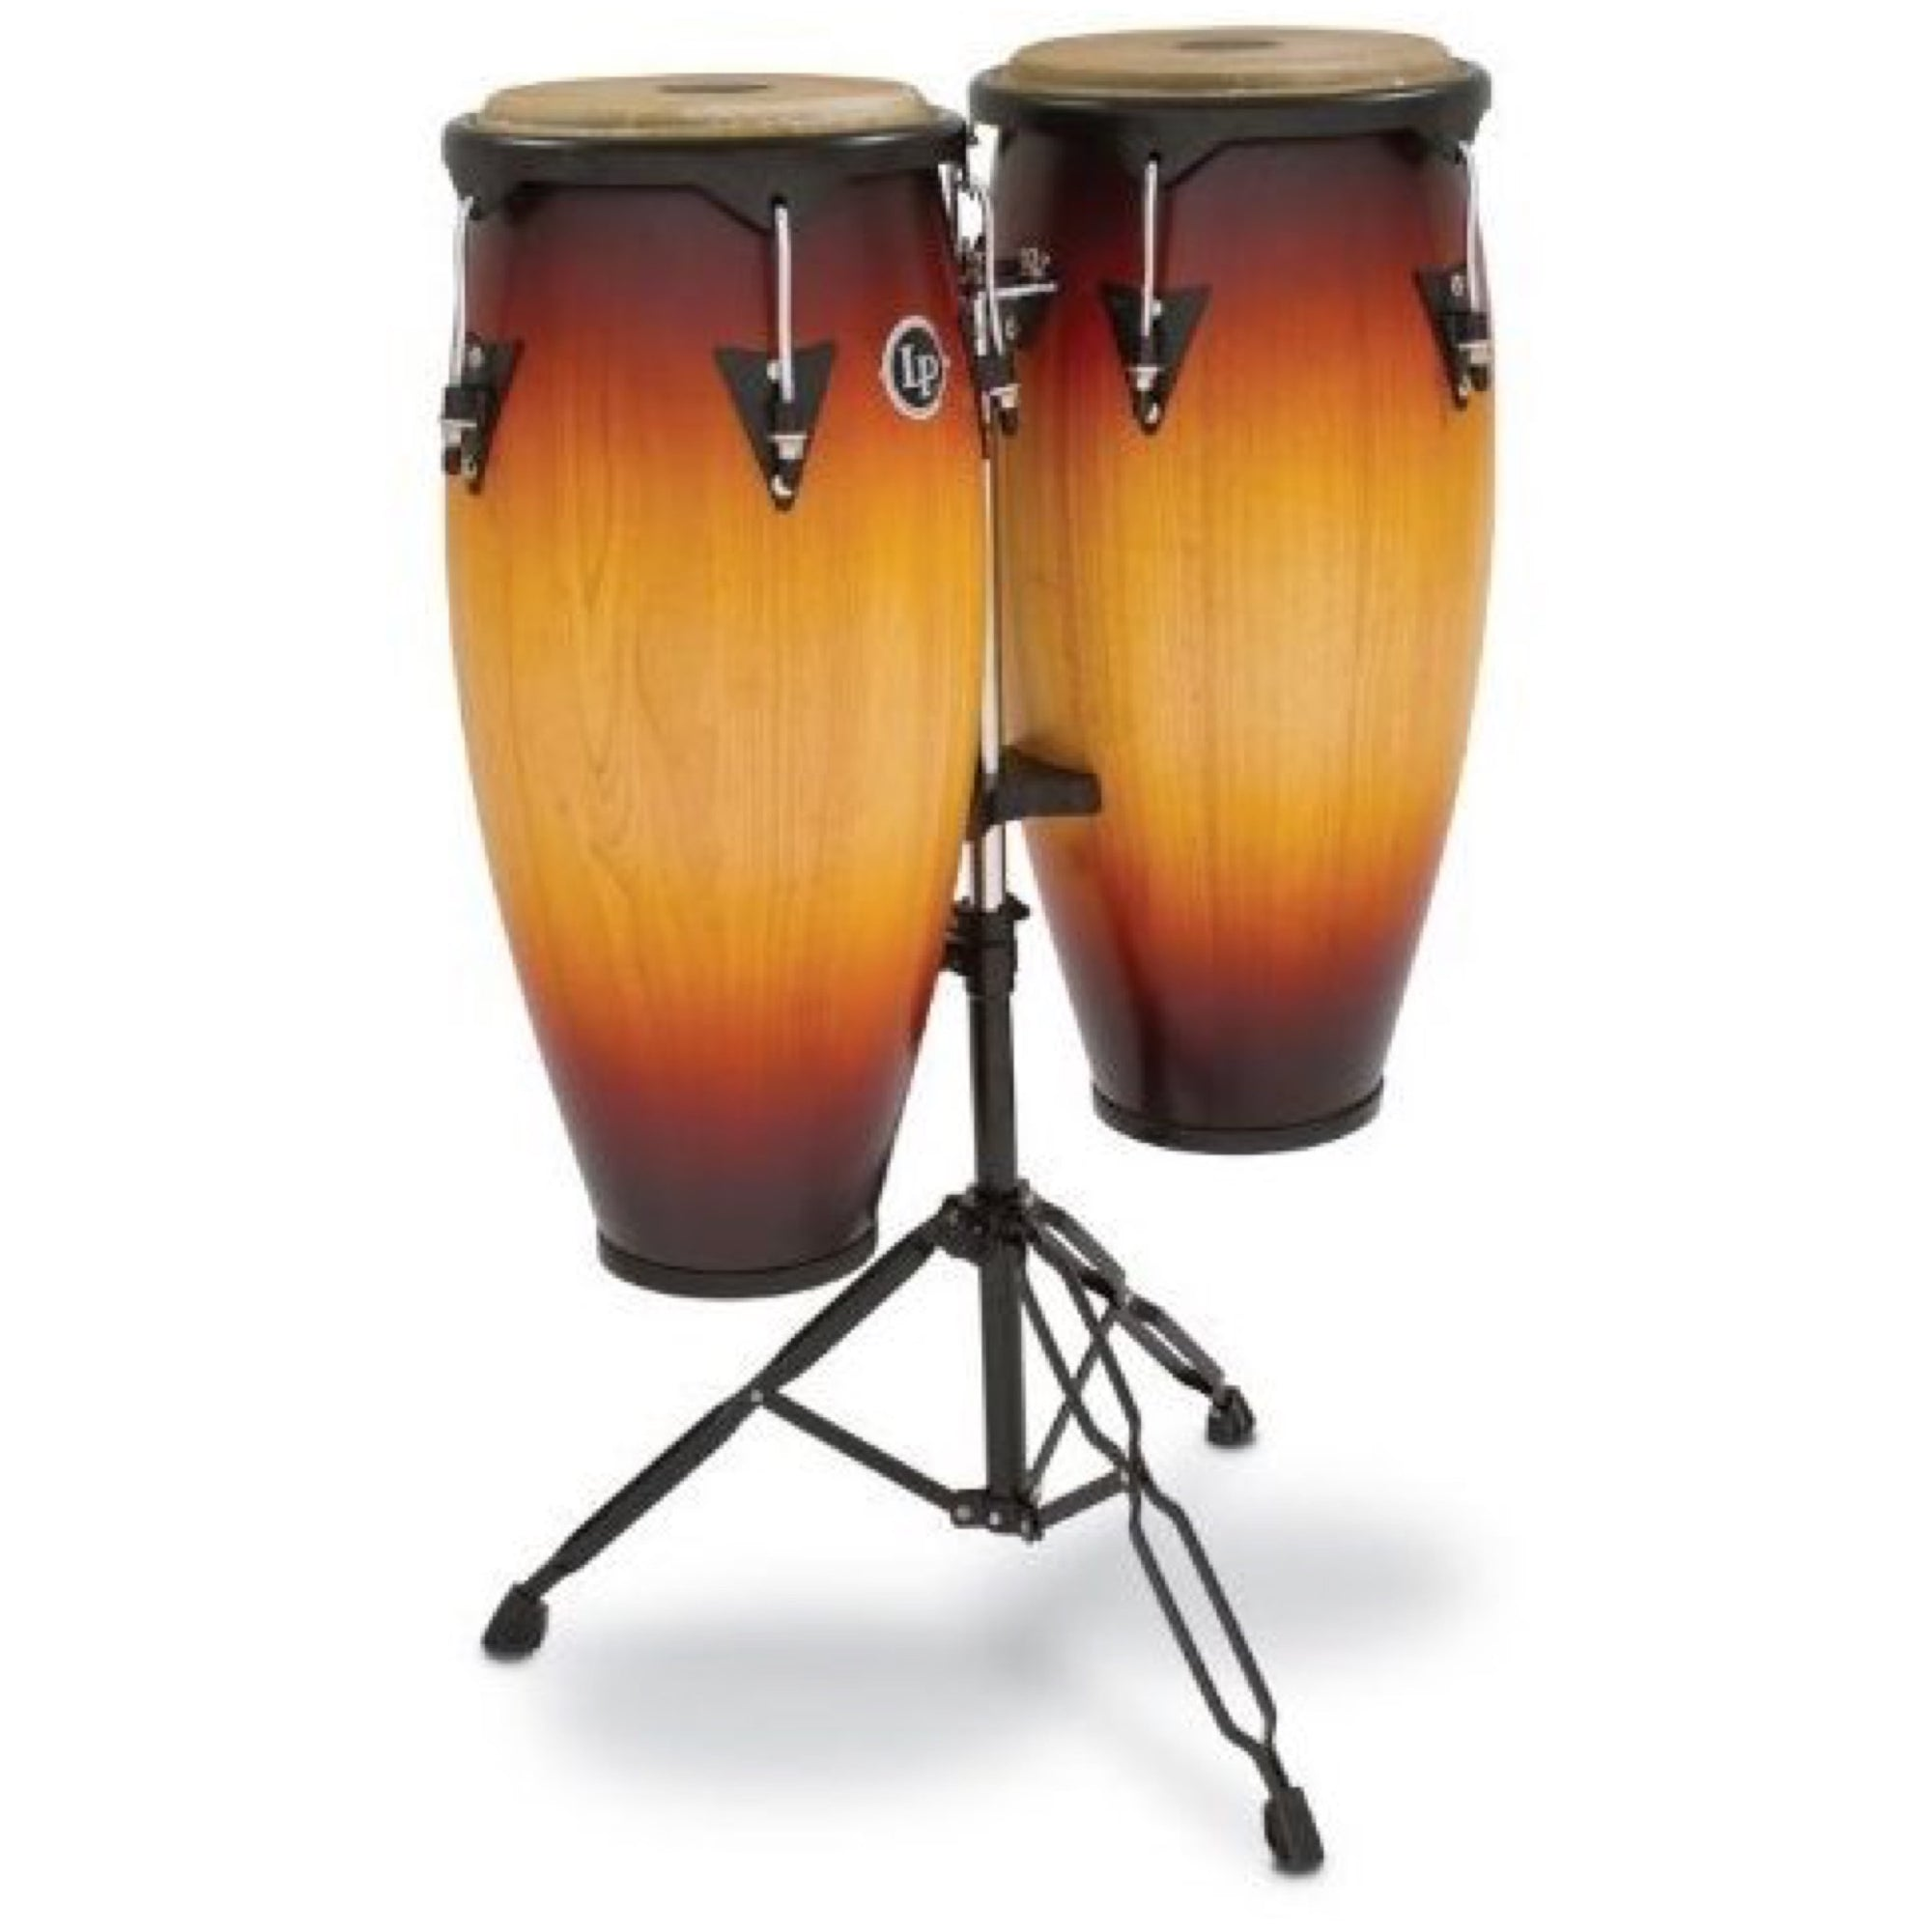 Latin Percussion 646 City Series Congas, Vintage Sunburst, 10 Inch and 11 Inch